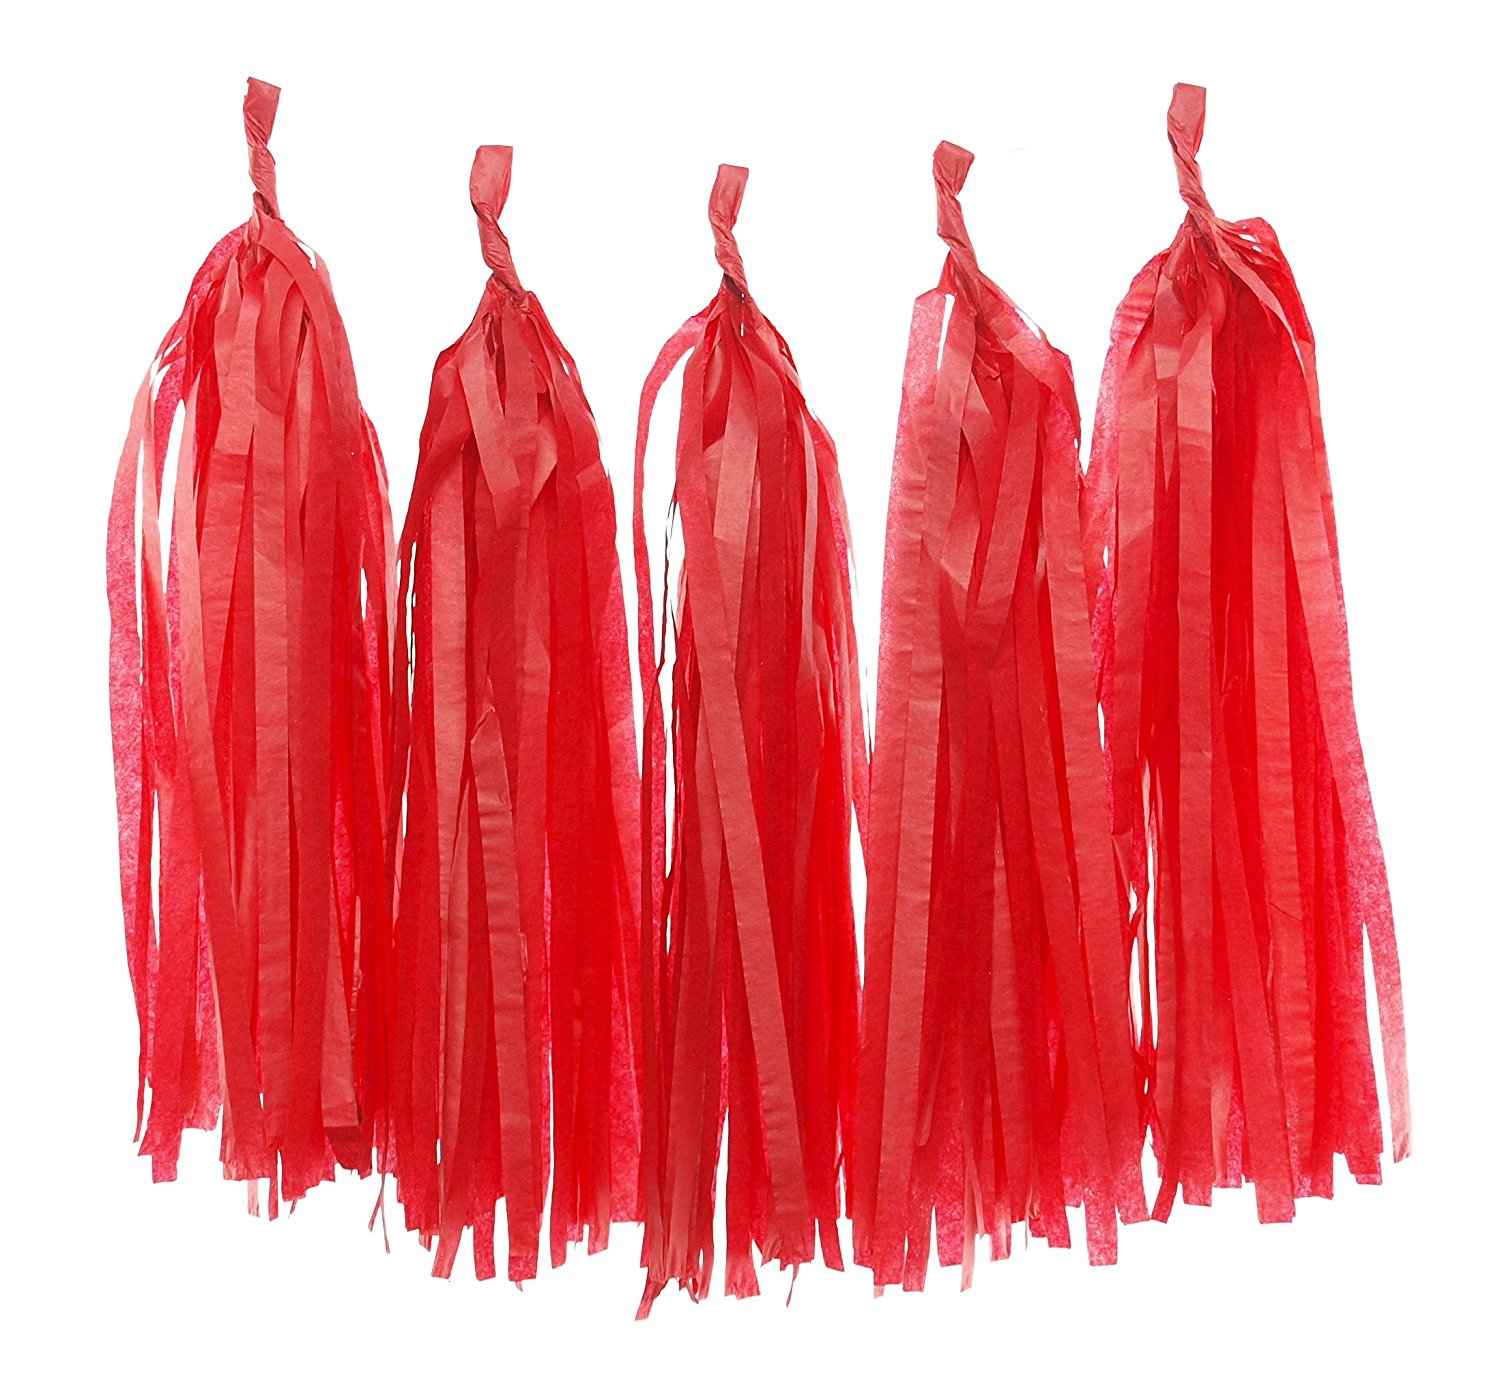 Red Tissue Garland, Wedding Banner Tassels (Set of 5) - Party Backdrops, Paper Streamers, Christmas Party Decorations, Paper Tassel Garland